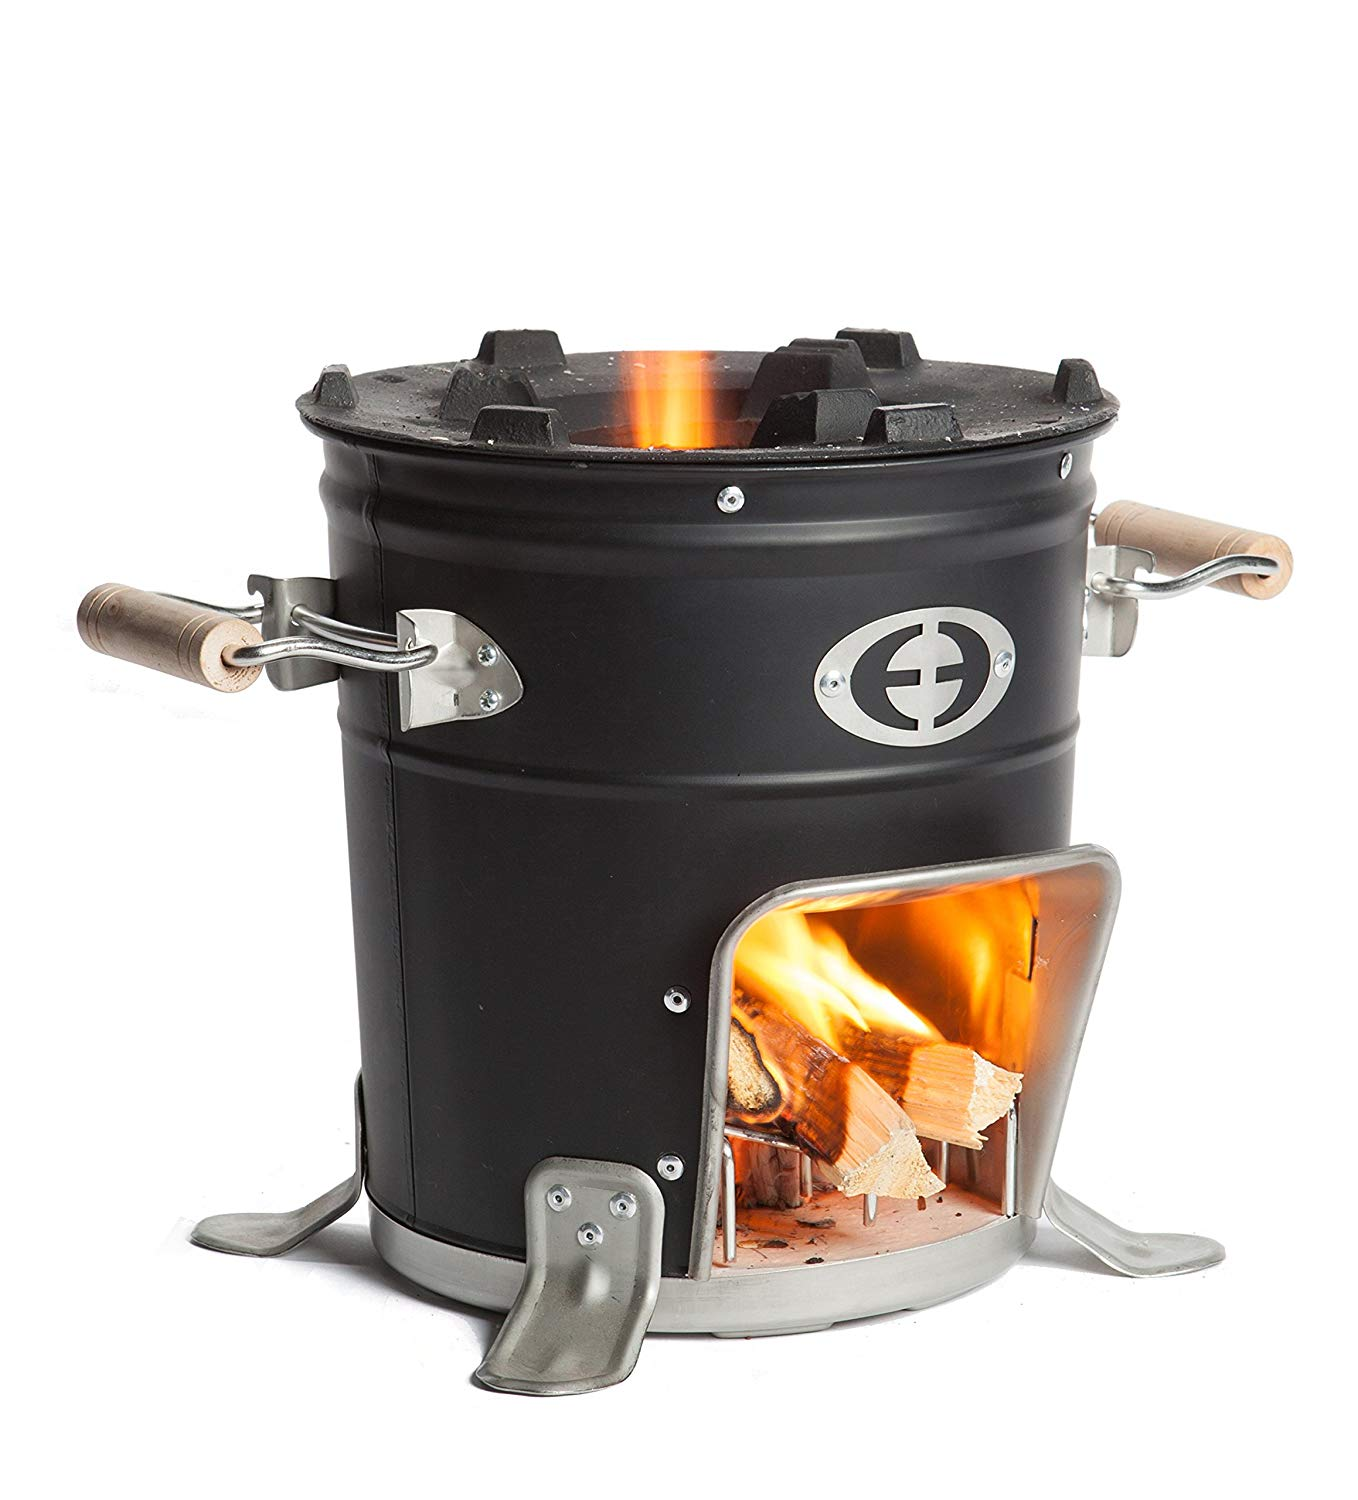 Best Rocket Stoves For Camping & Survival Enthusiasts Review 4